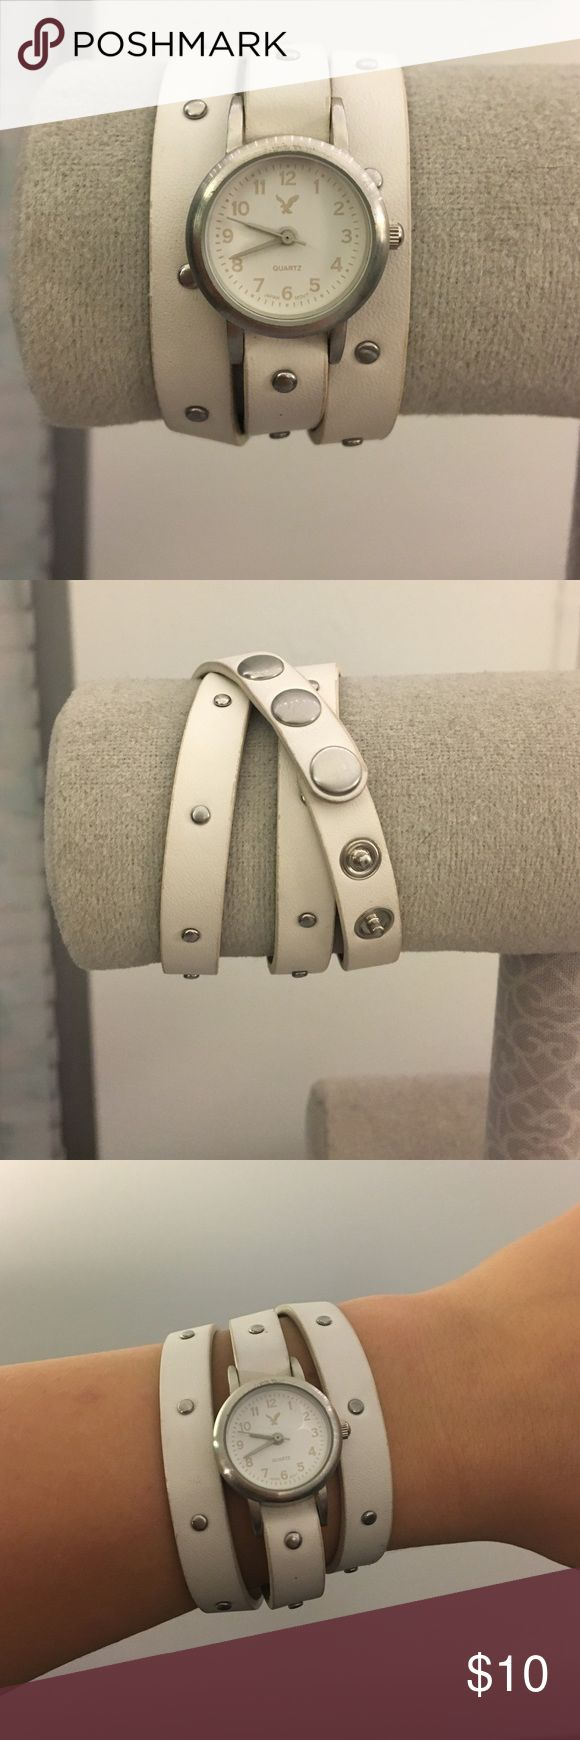 American Eagle watch White & silver watch with silver stud accents, triple wrap around, super cute addition to any outfit! American Eagle Outfitters Jewelry Bracelets